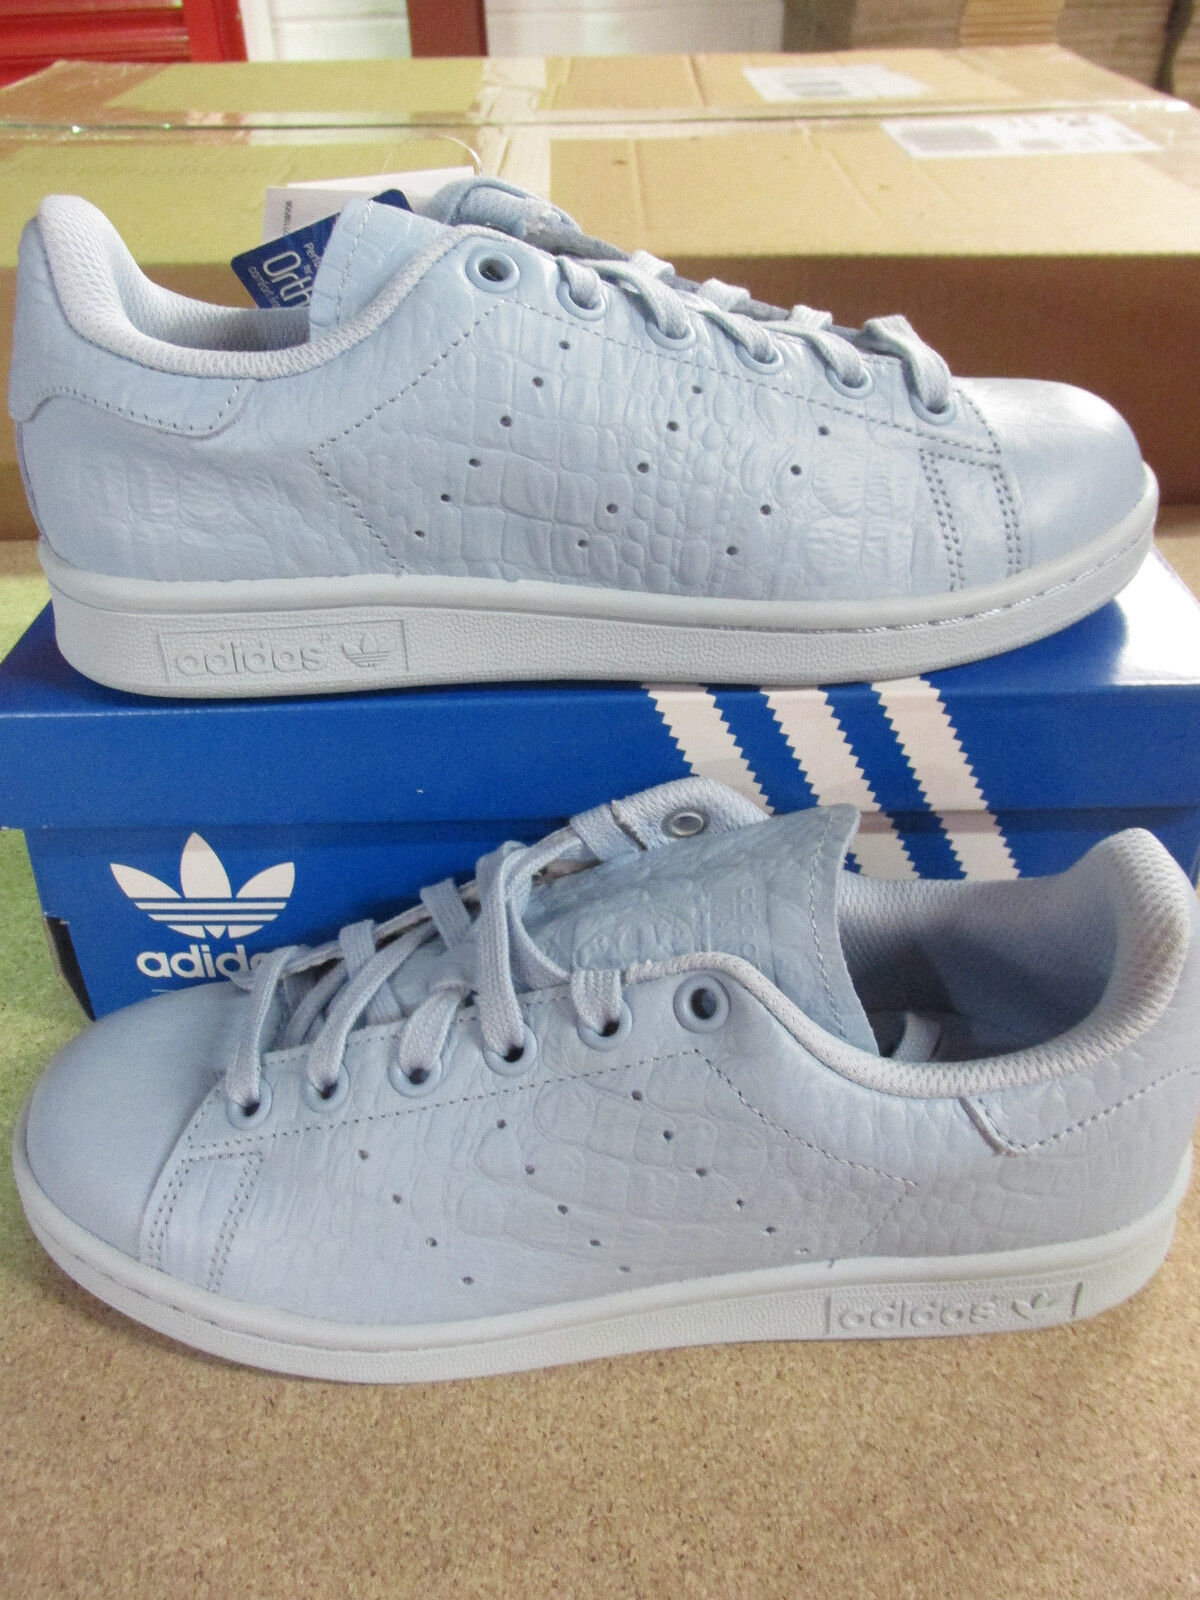 Adidas Originals Stan Smith W womens Trainers BB3713 Sneakers shoes